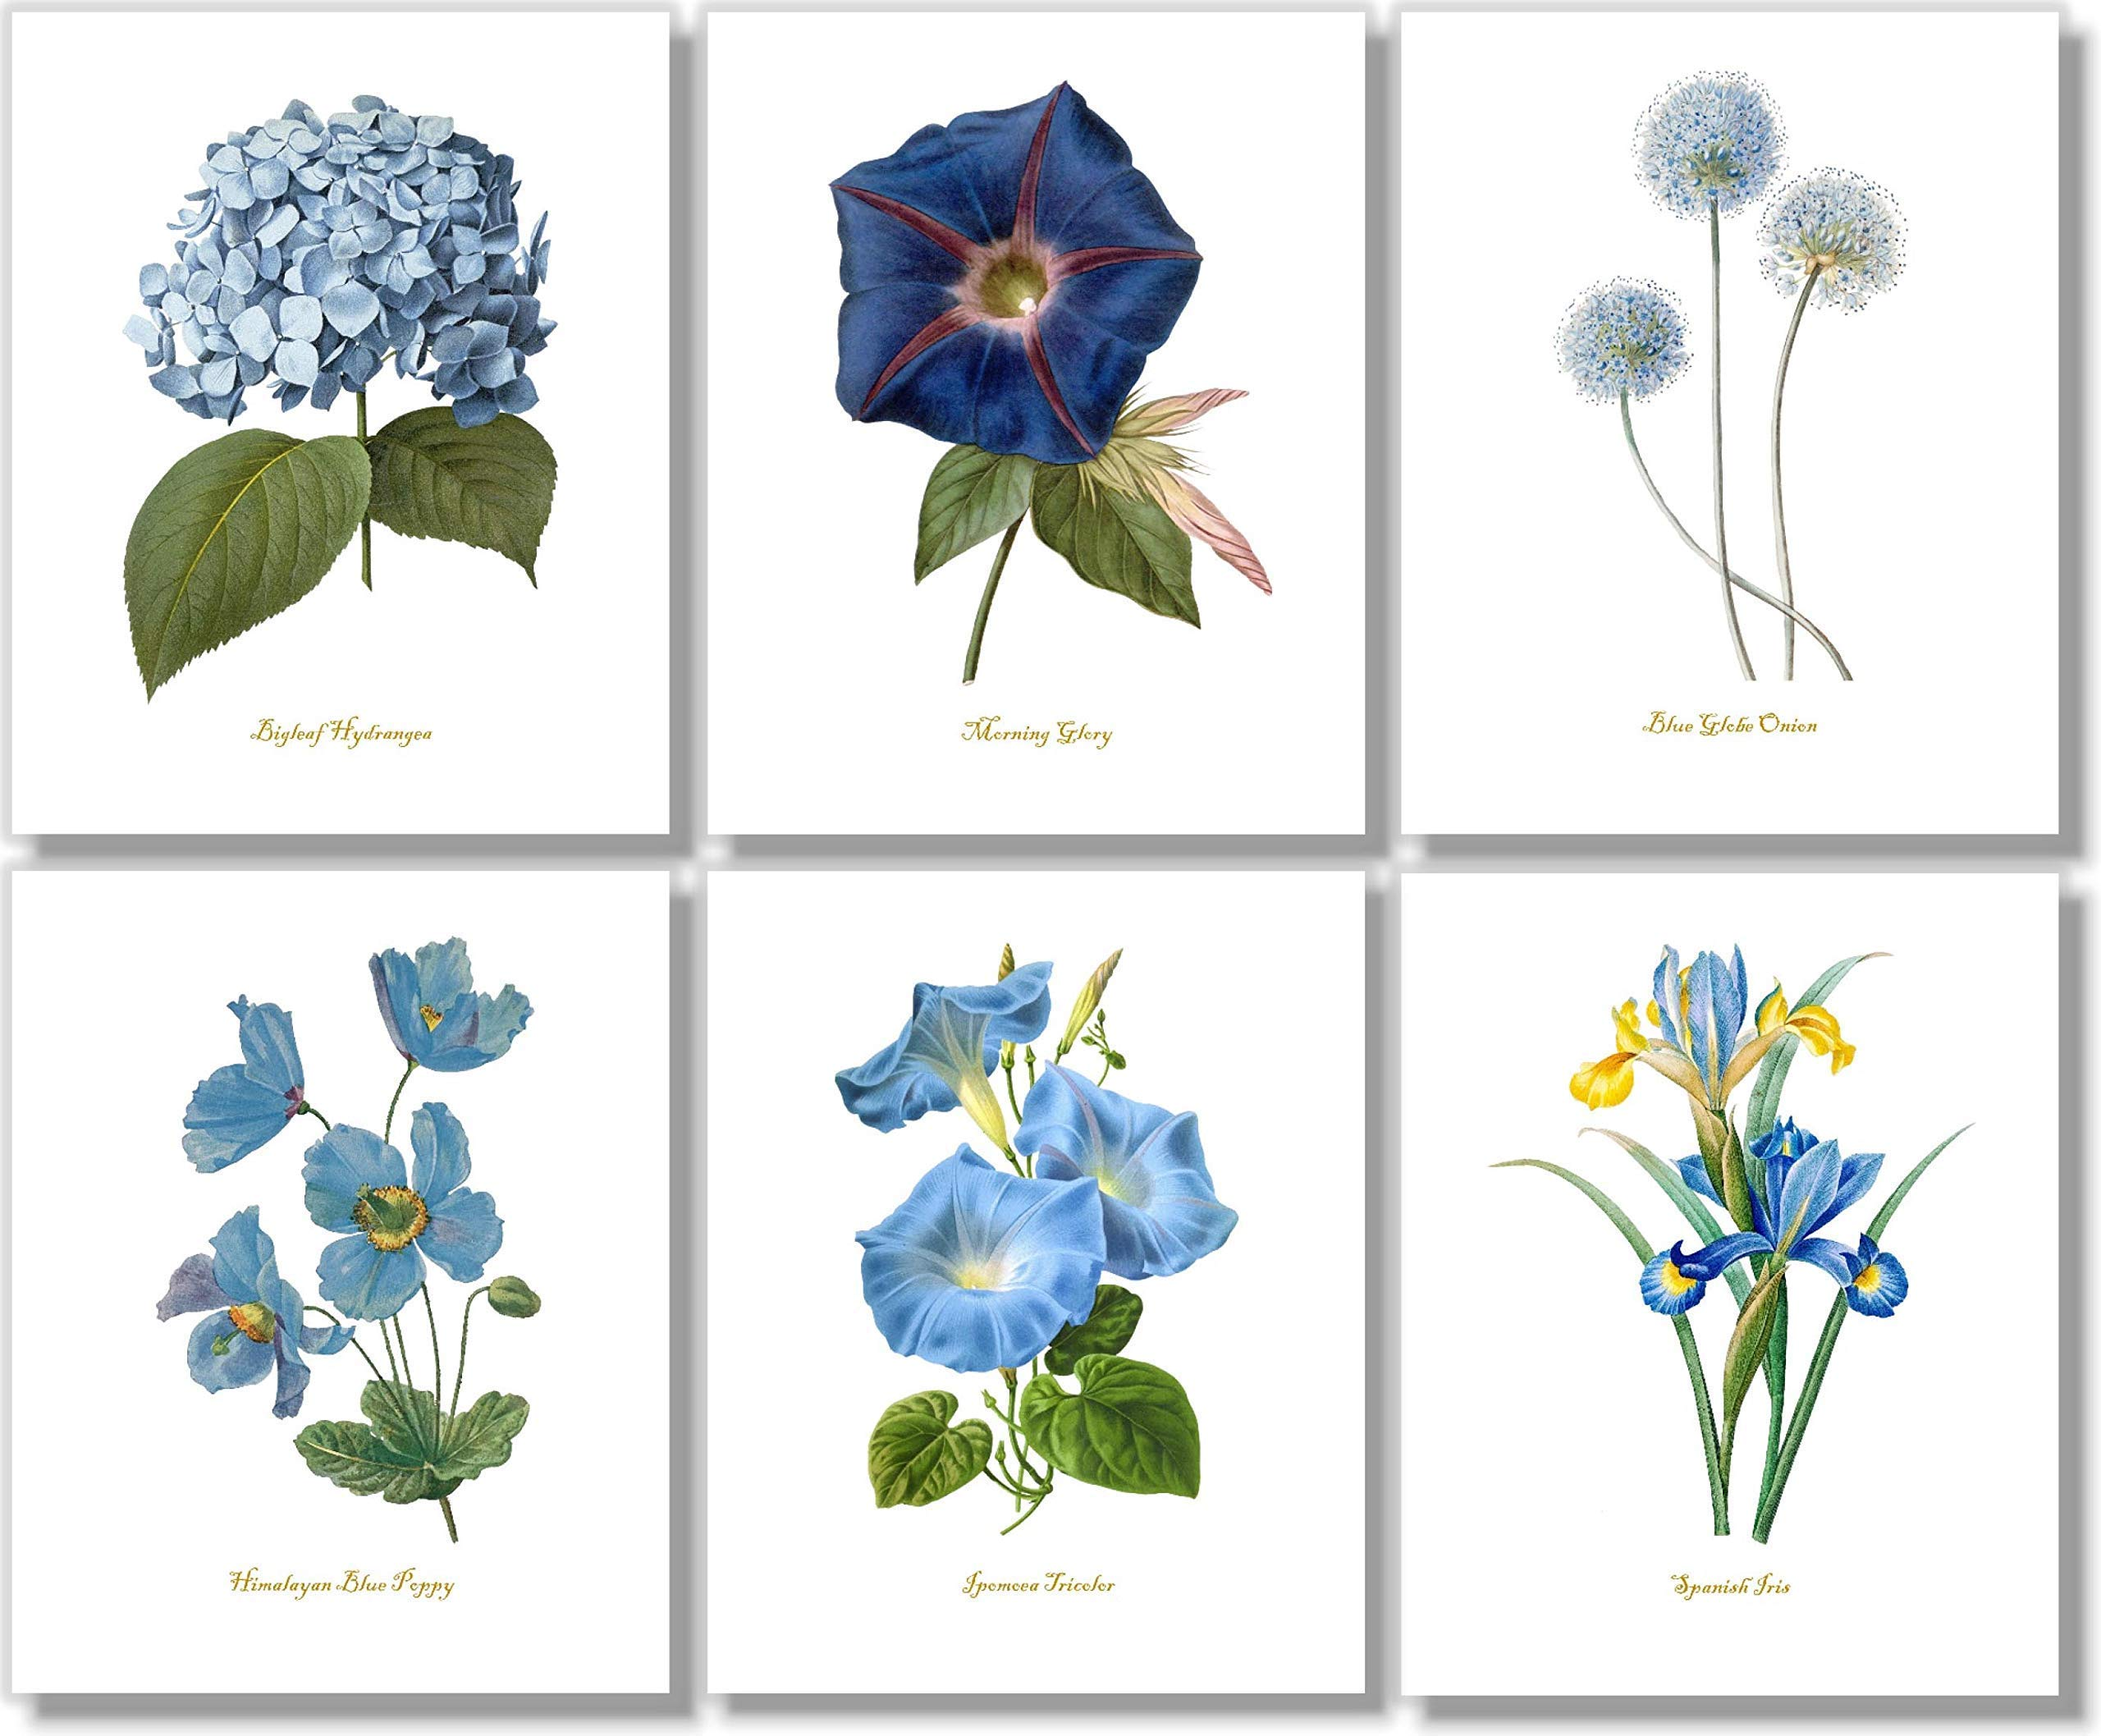 Blue Flower Wall Art - Vintage Floral Decor - Botanical Prints (Set of 6) - 8 x 10 - Unframed